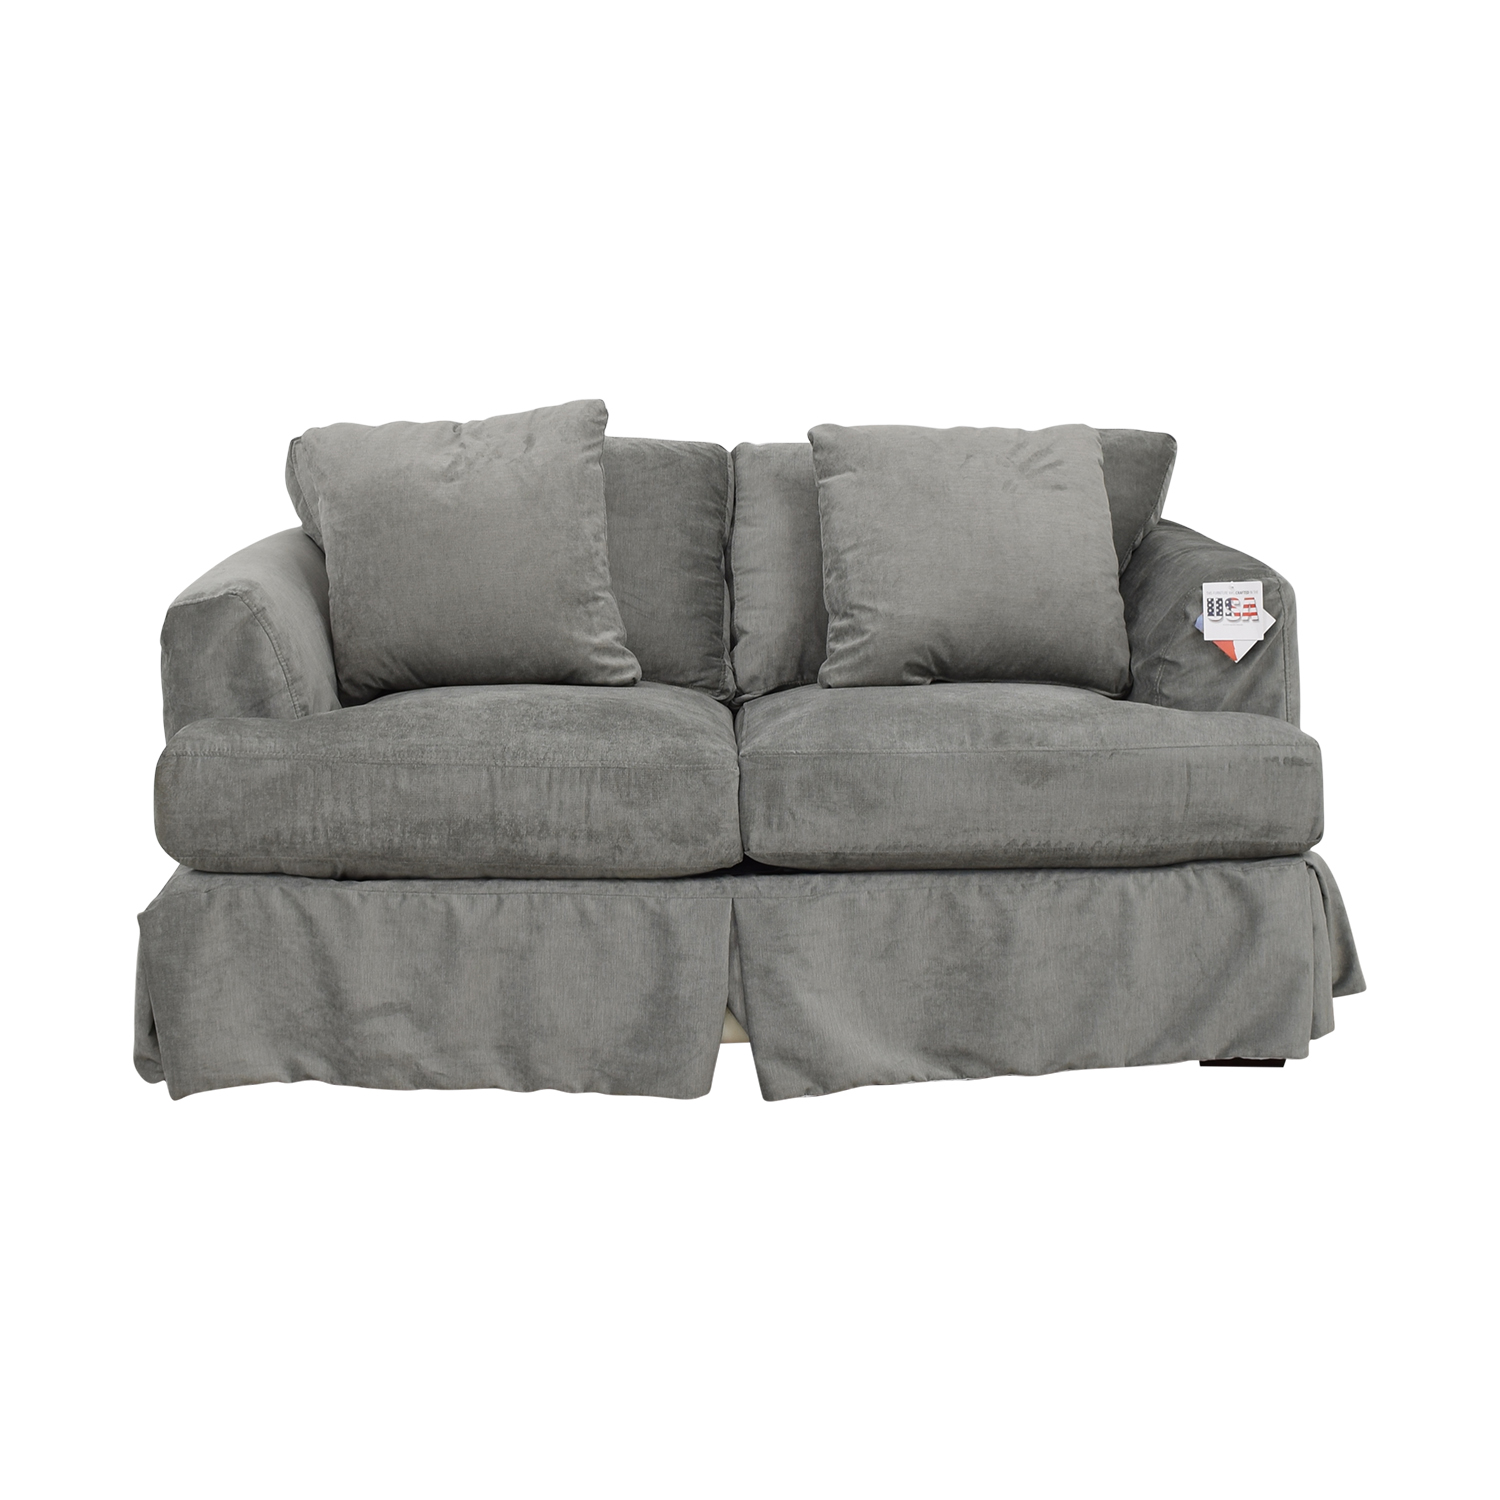 Wayfair Wayfair Grey Upholstered Two-Cushion Loveseat discount